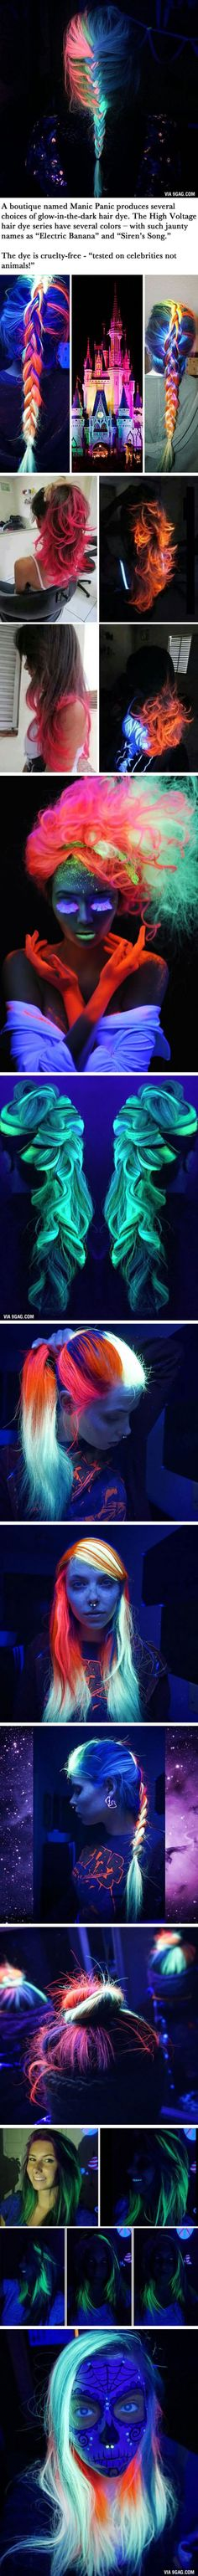 Rainbow Hair That Can Glow In The Dark Under Black Light Is Now A Thing (via Rainbowmegz)